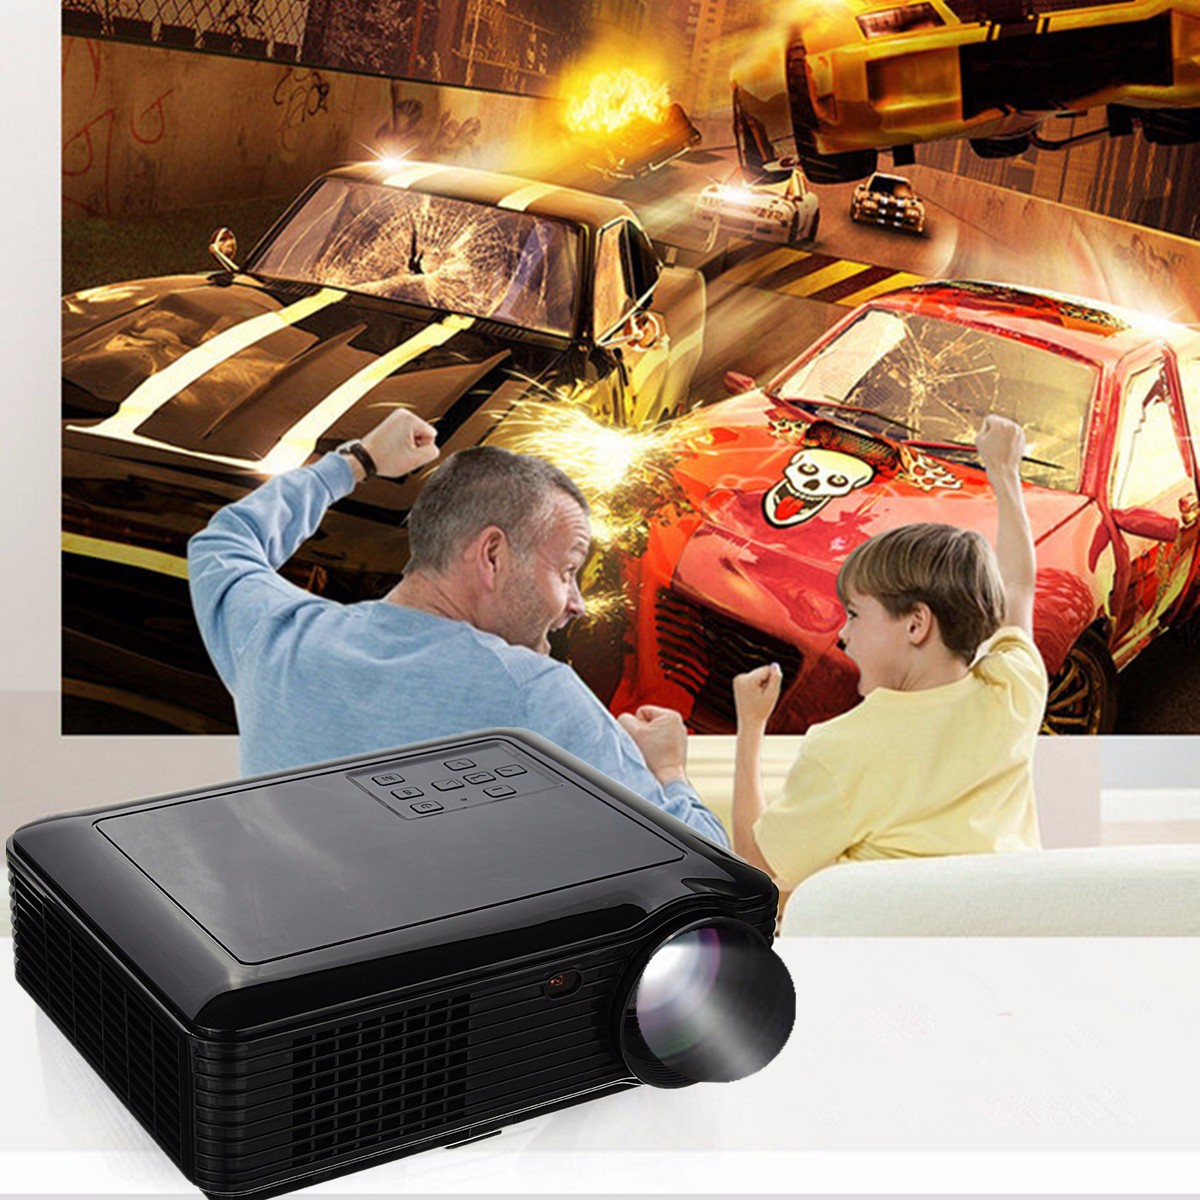 SV-226 Portable Full HD 3D 3500 Lumens LCD LED Projector Cinema Home Theater With Remote Control